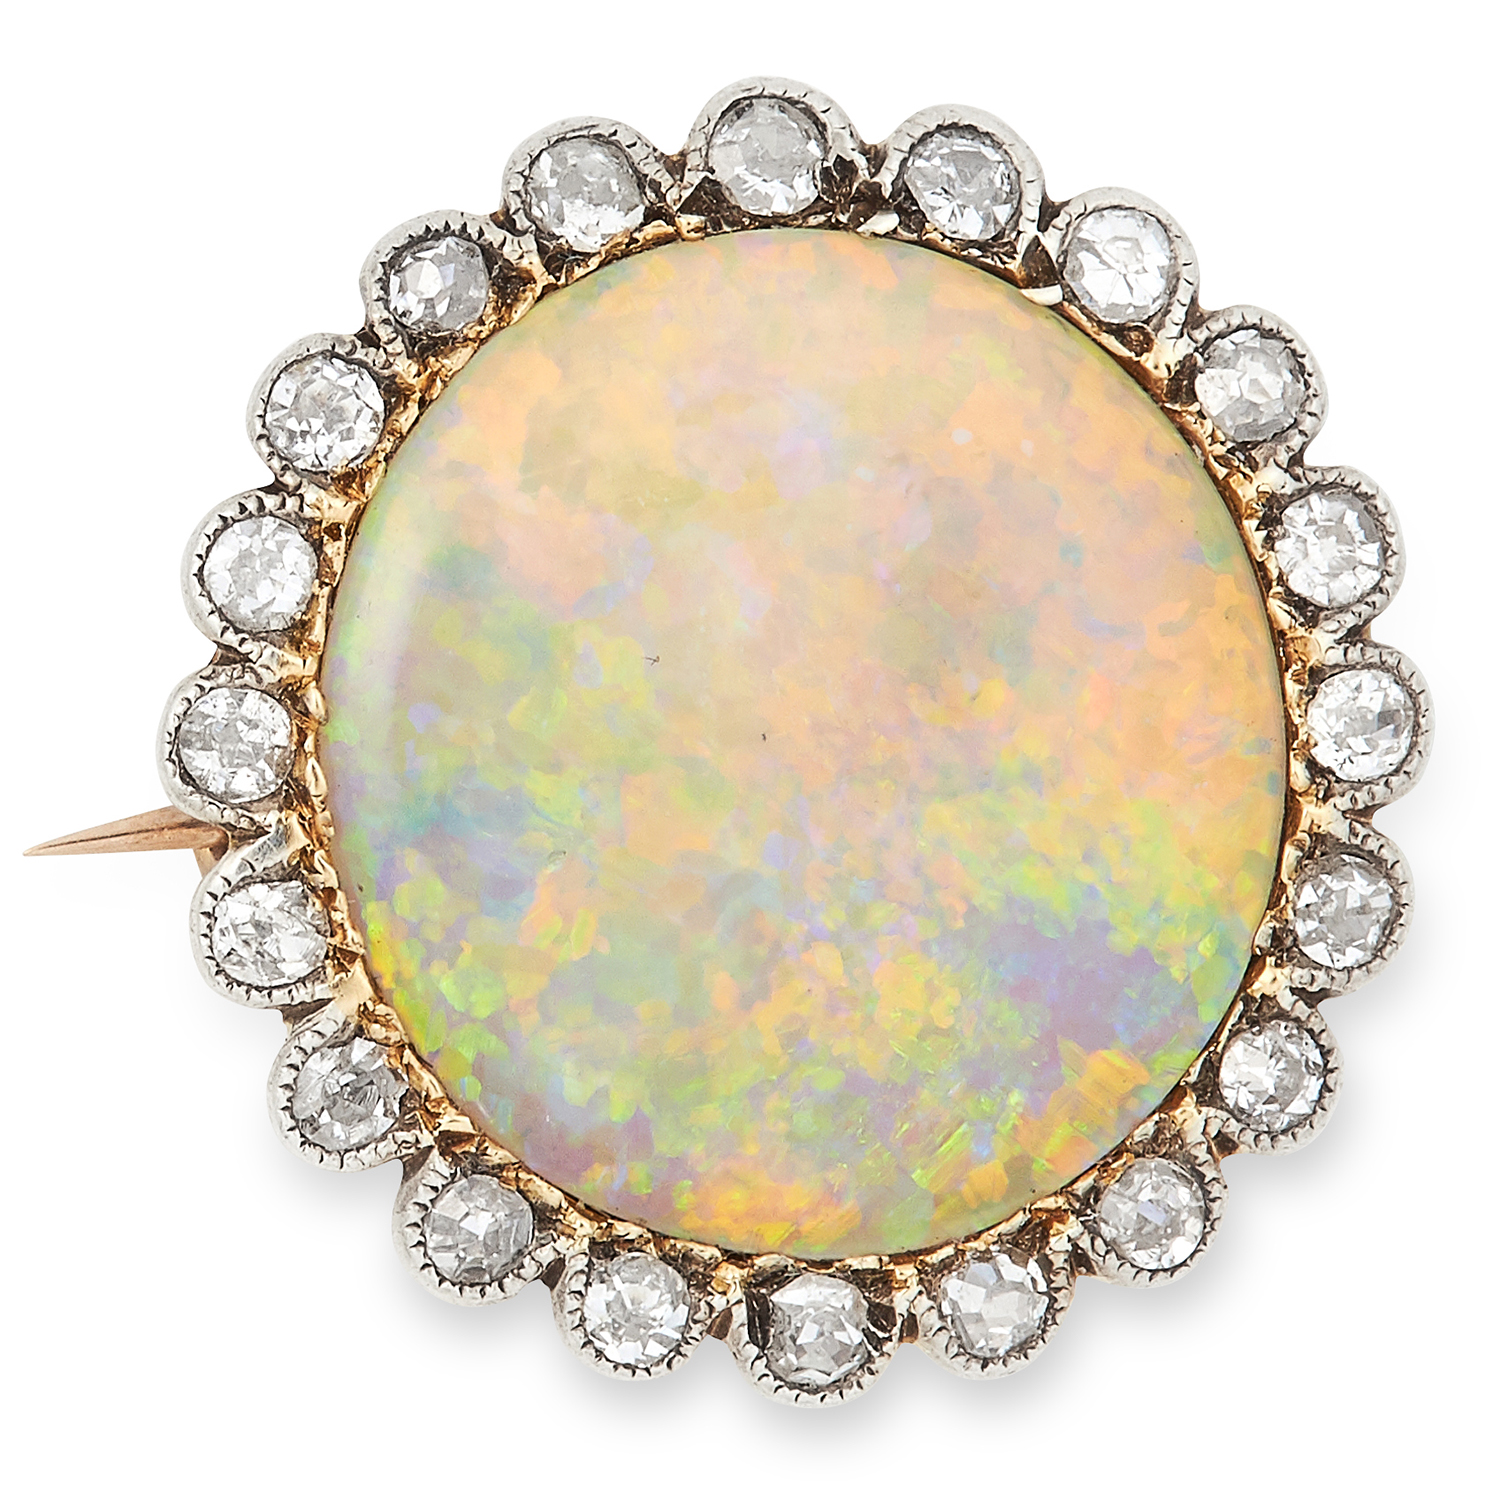 ANTIQUE OPAL AND DIAMOND BROOCH, 19TH CENTURY the circular cabochon opal of 14.3mm in diameter